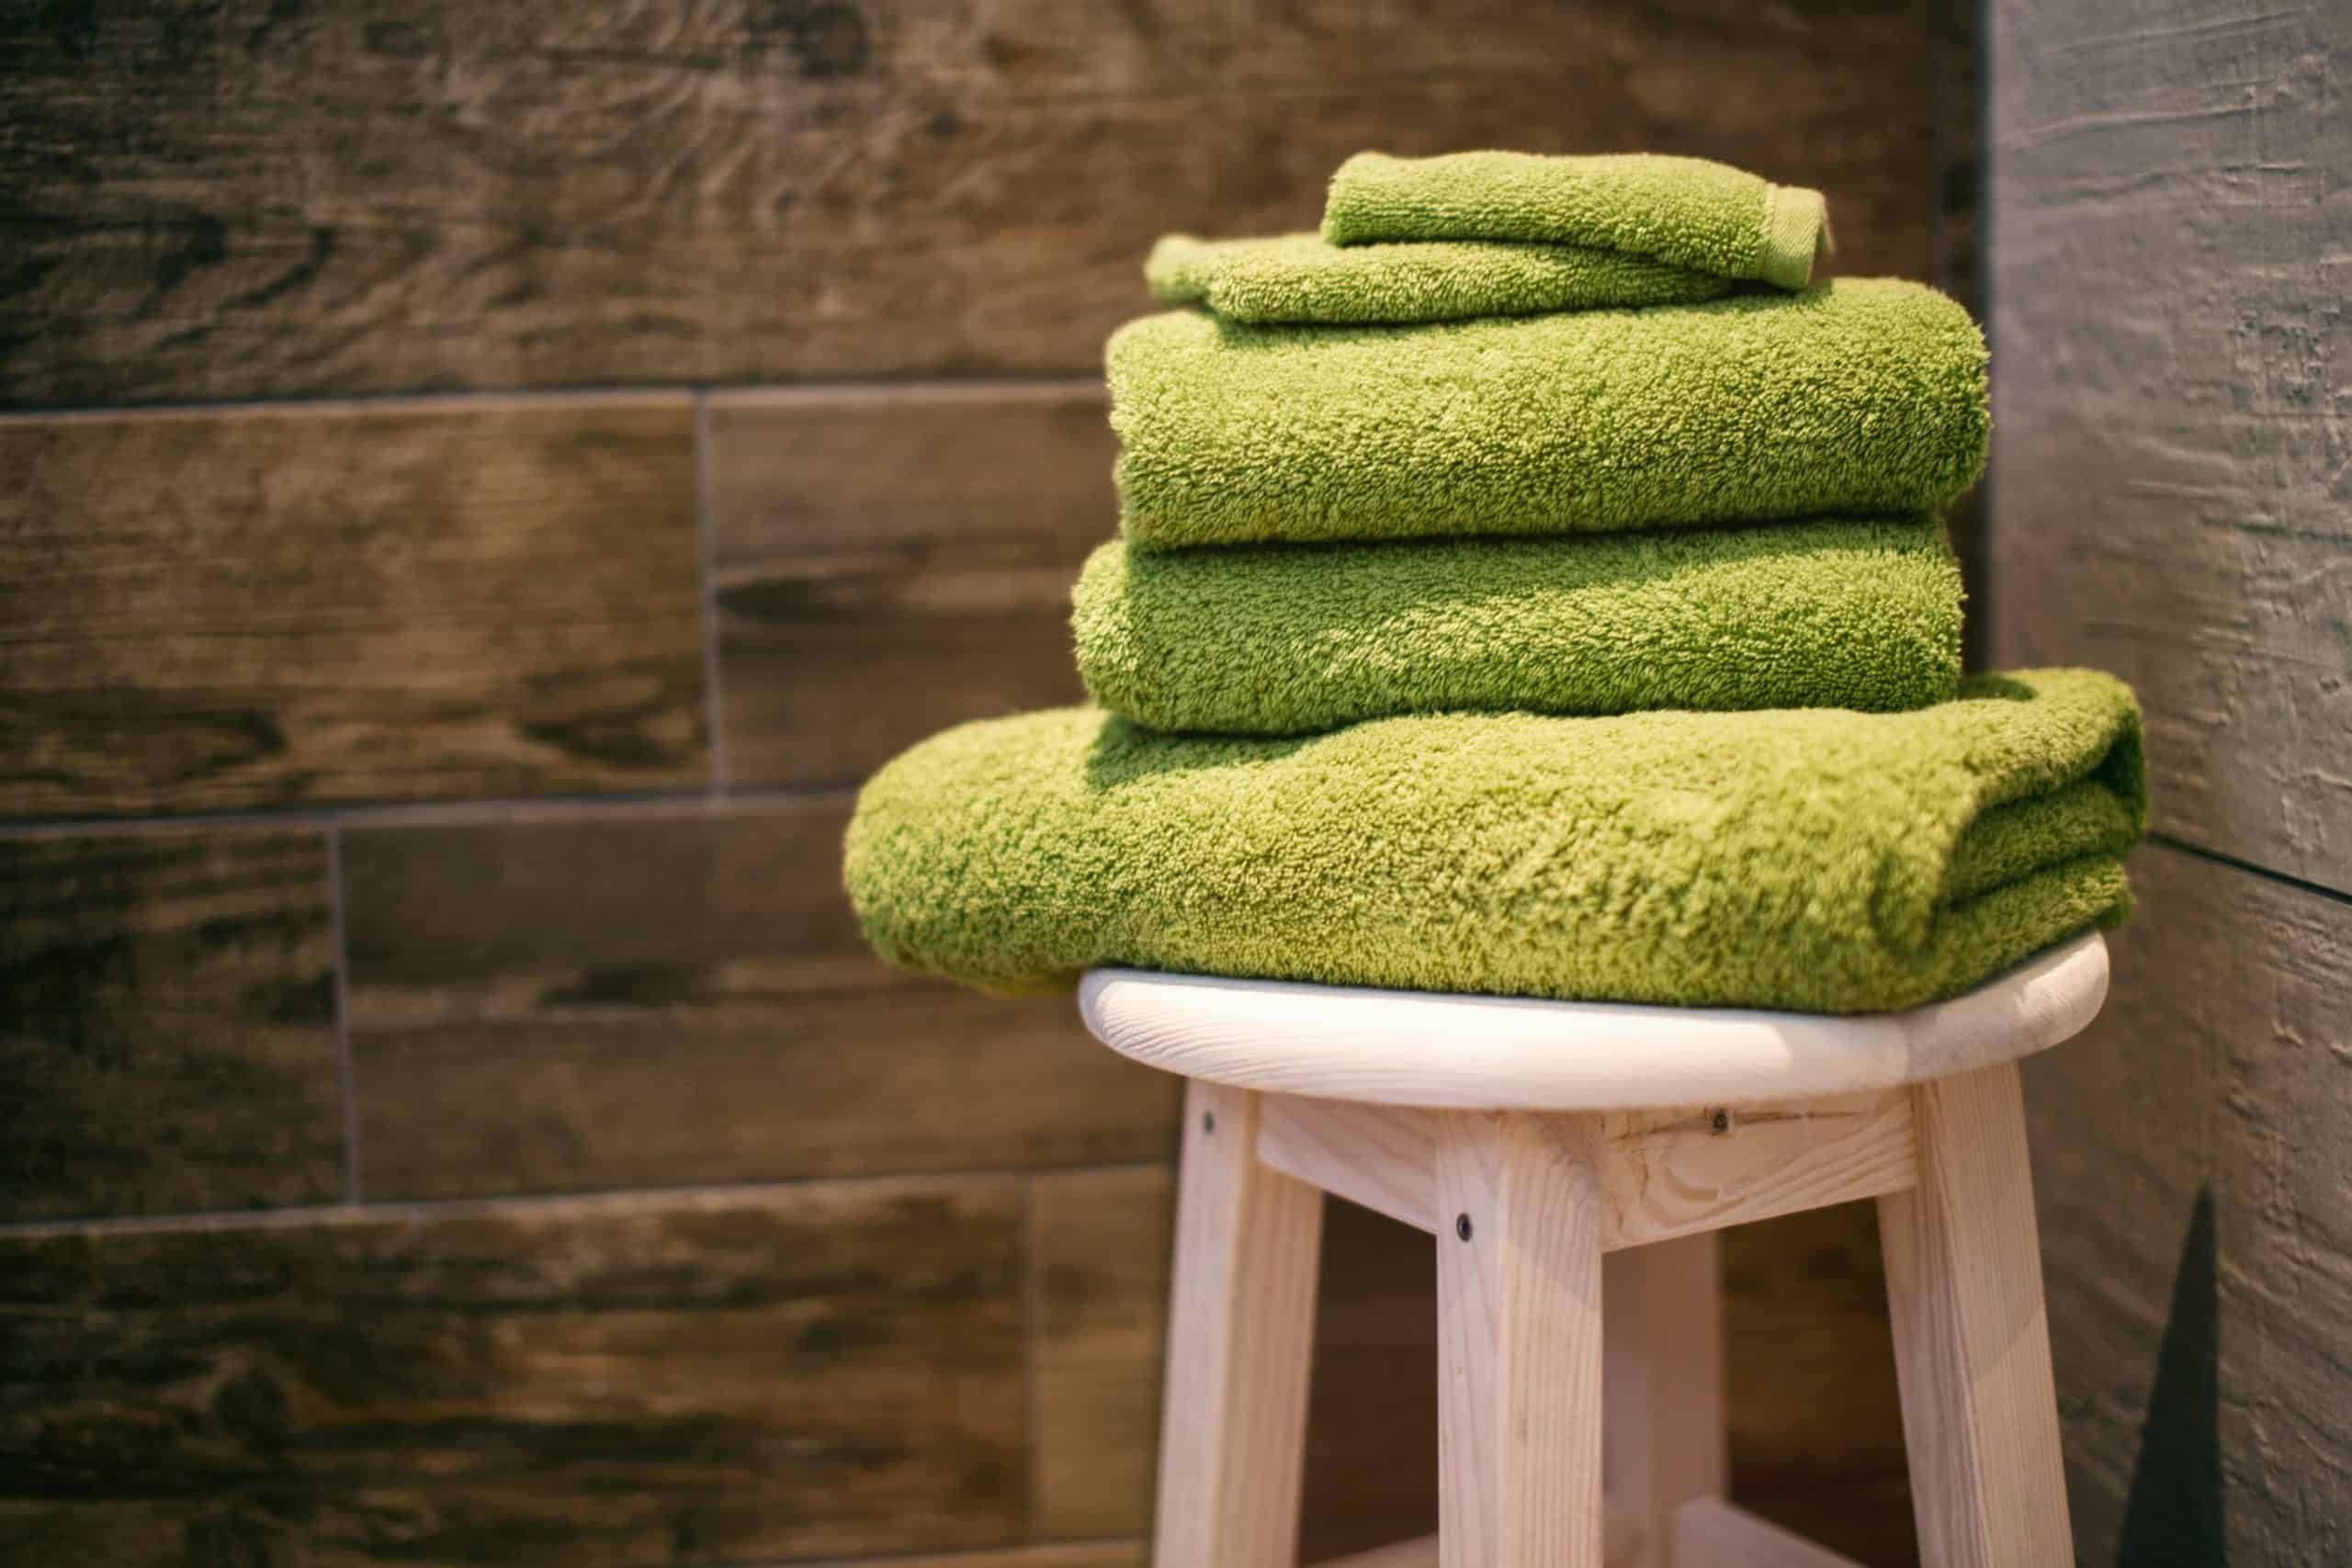 Set of towels